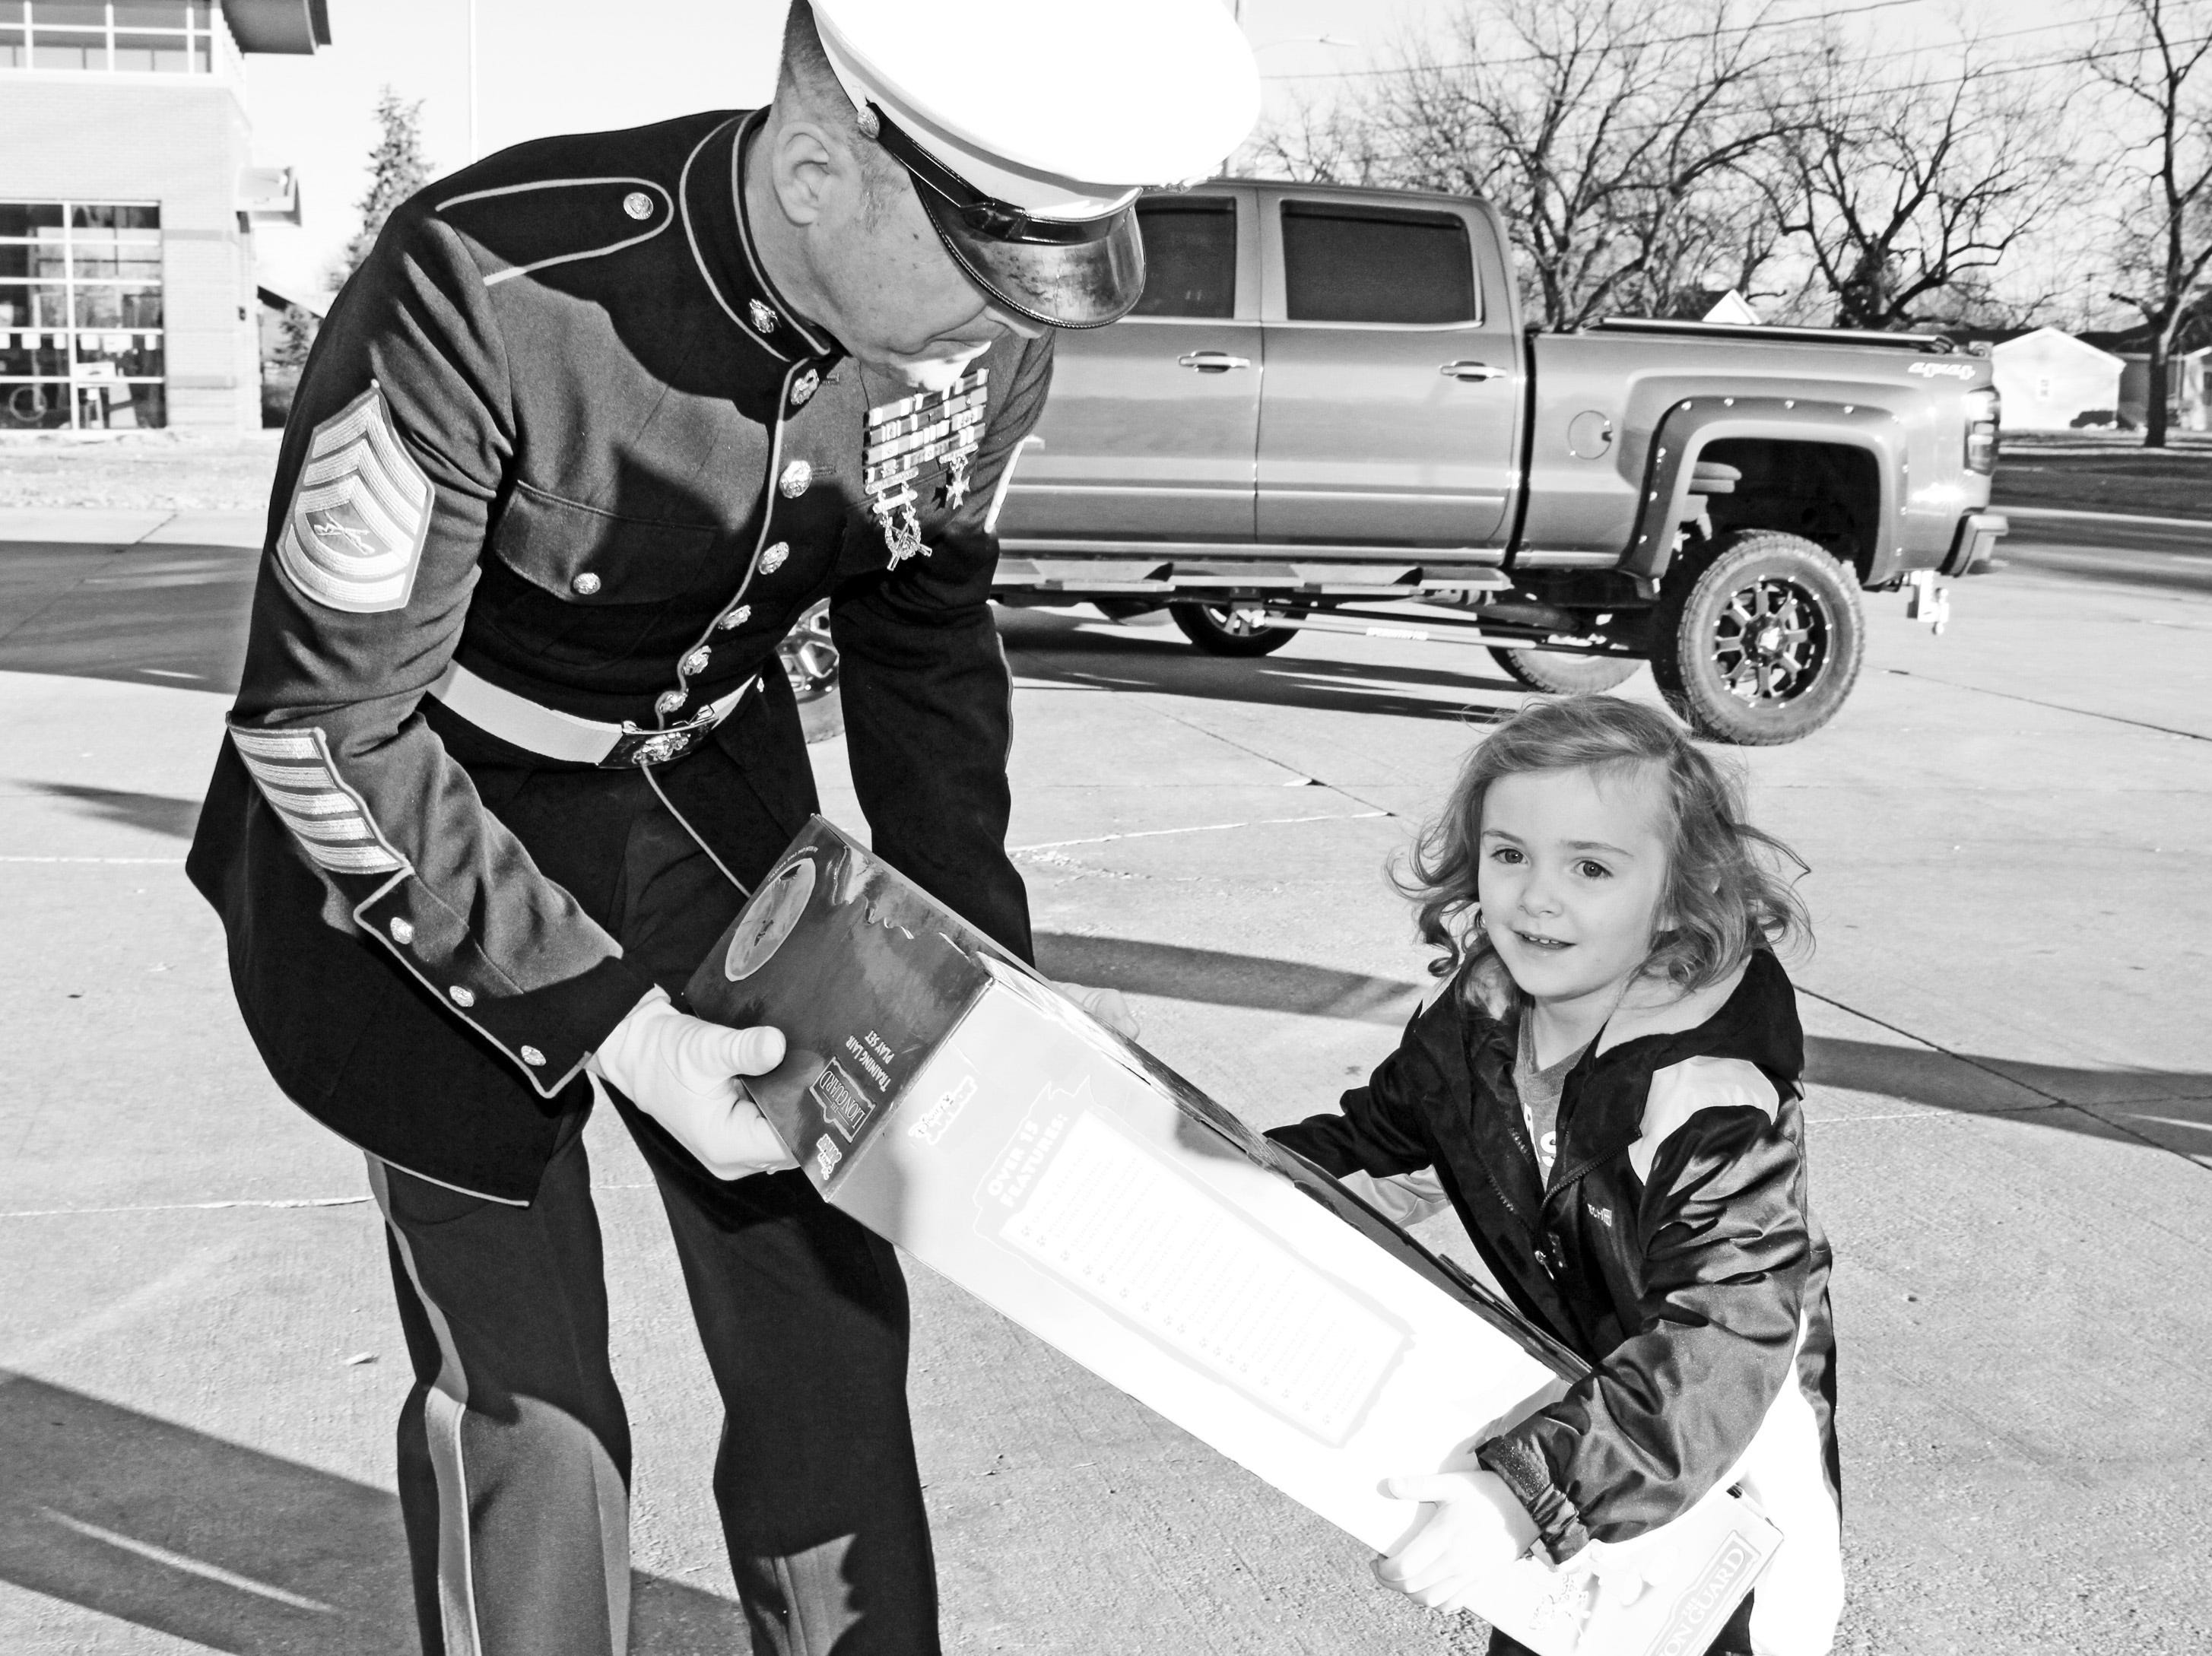 Elizabeth Bonham, 4, of Ankeny delivers presents to retired Marine Gunnery Sgt. Mark Amann, current member of the Ankeny Fire Department, as gifts are dropped off at Ankeny's fill the truck day at the Ankeny Fire Station Headquarters on Sunday, Dec. 16, 2018. The event coincides with the U.S. Marine Corps Toys for Tots campaign.